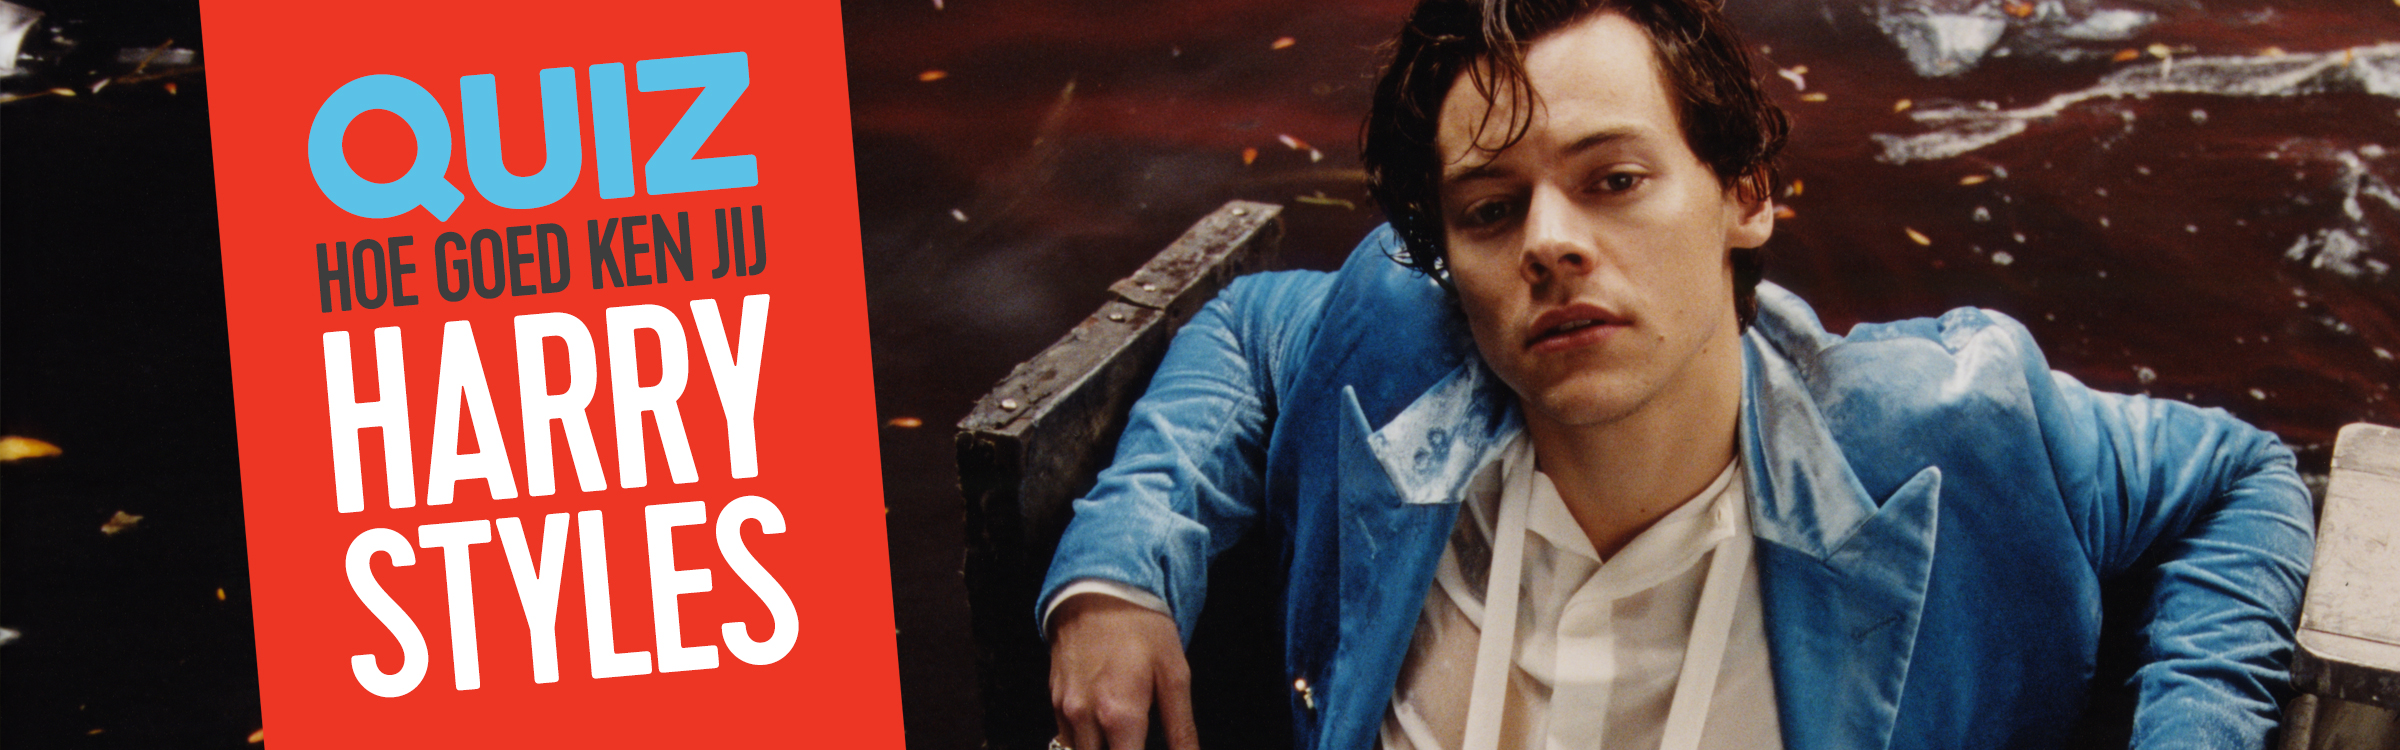 Header.harry.styles